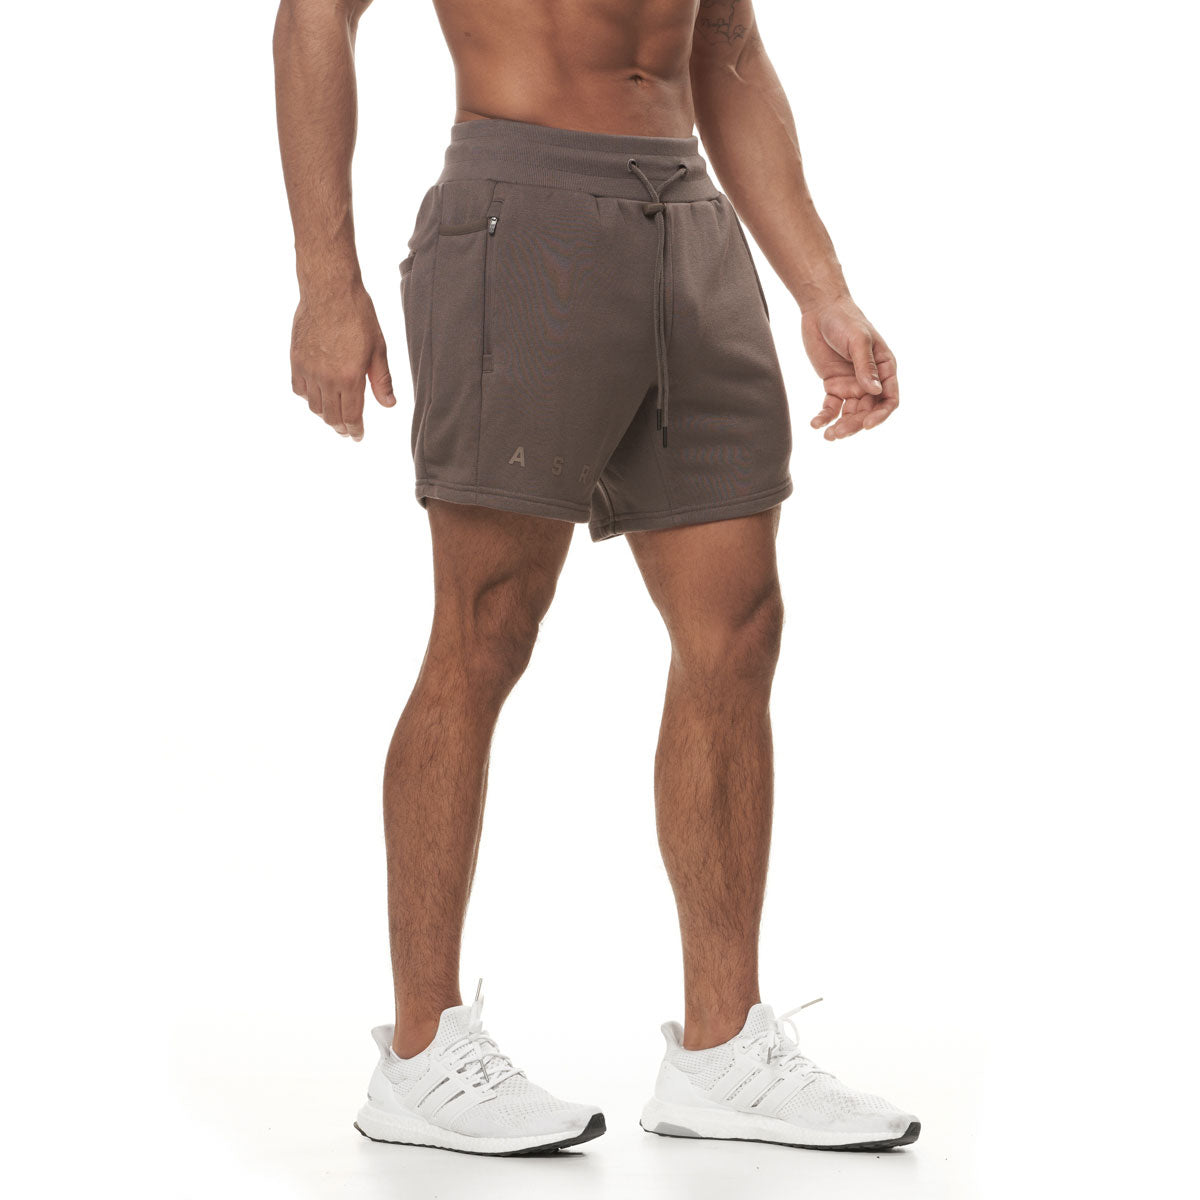 0398. French Terry Sweat Shorts - Deep Taupe